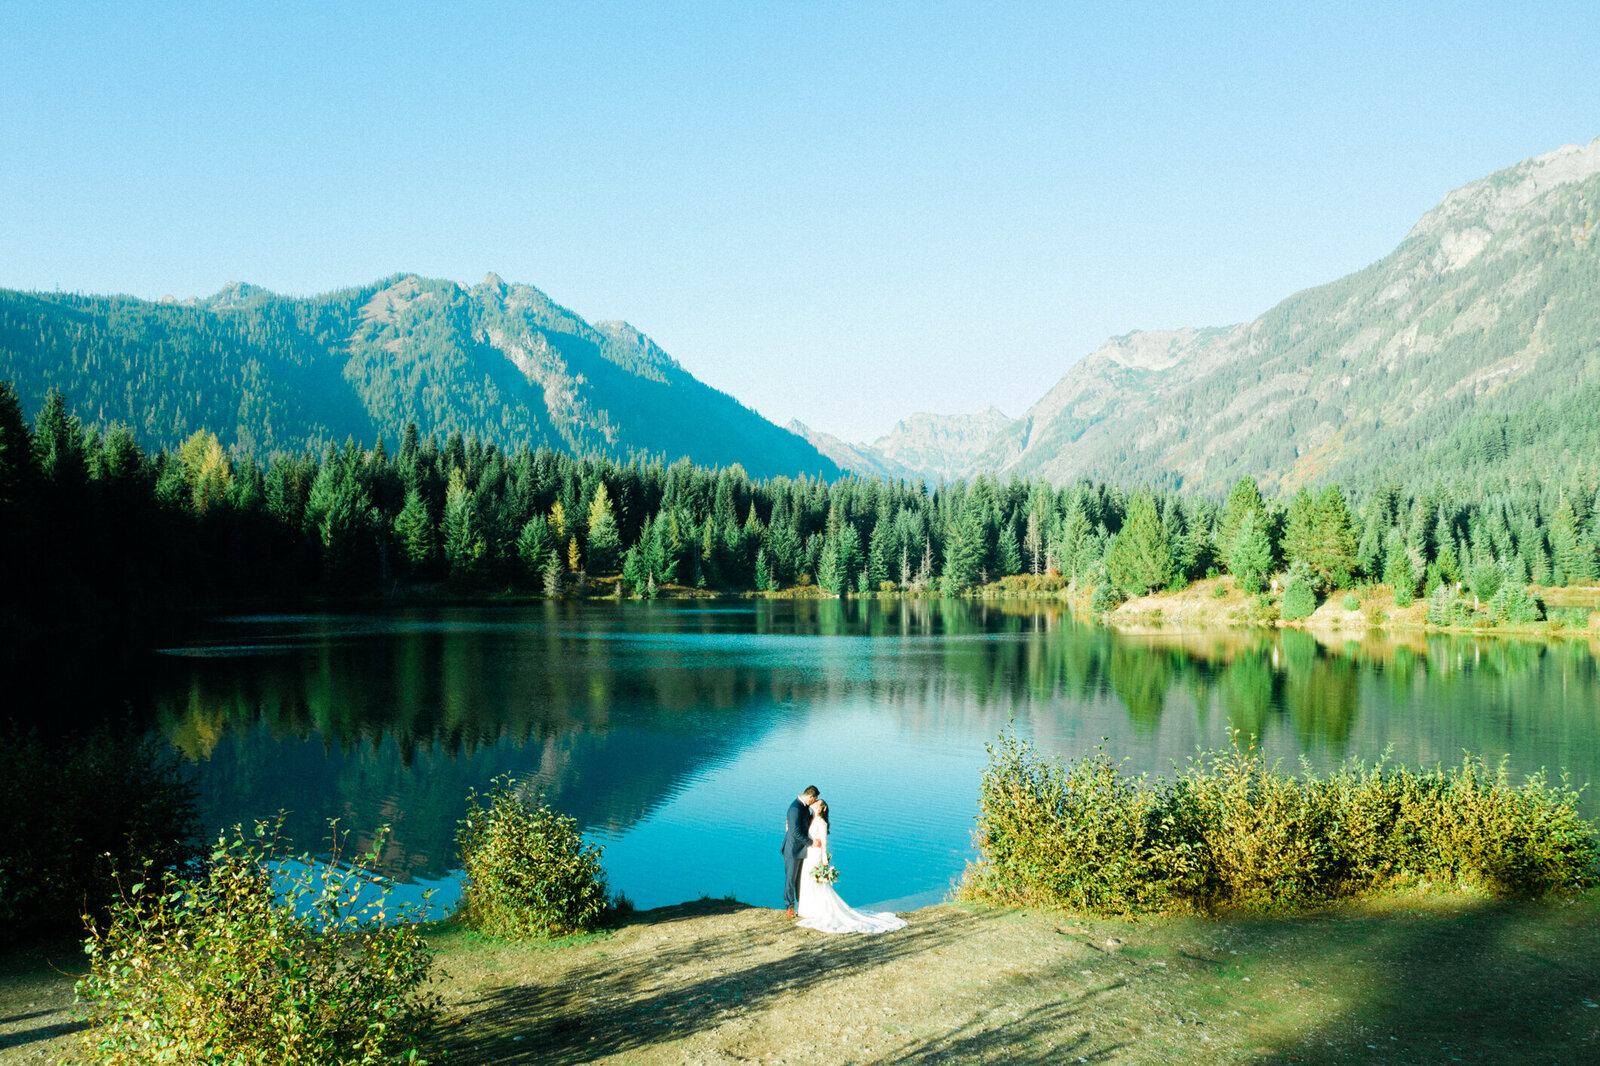 Drone photo of gold creek pond, top choice for engagement photos in seattle